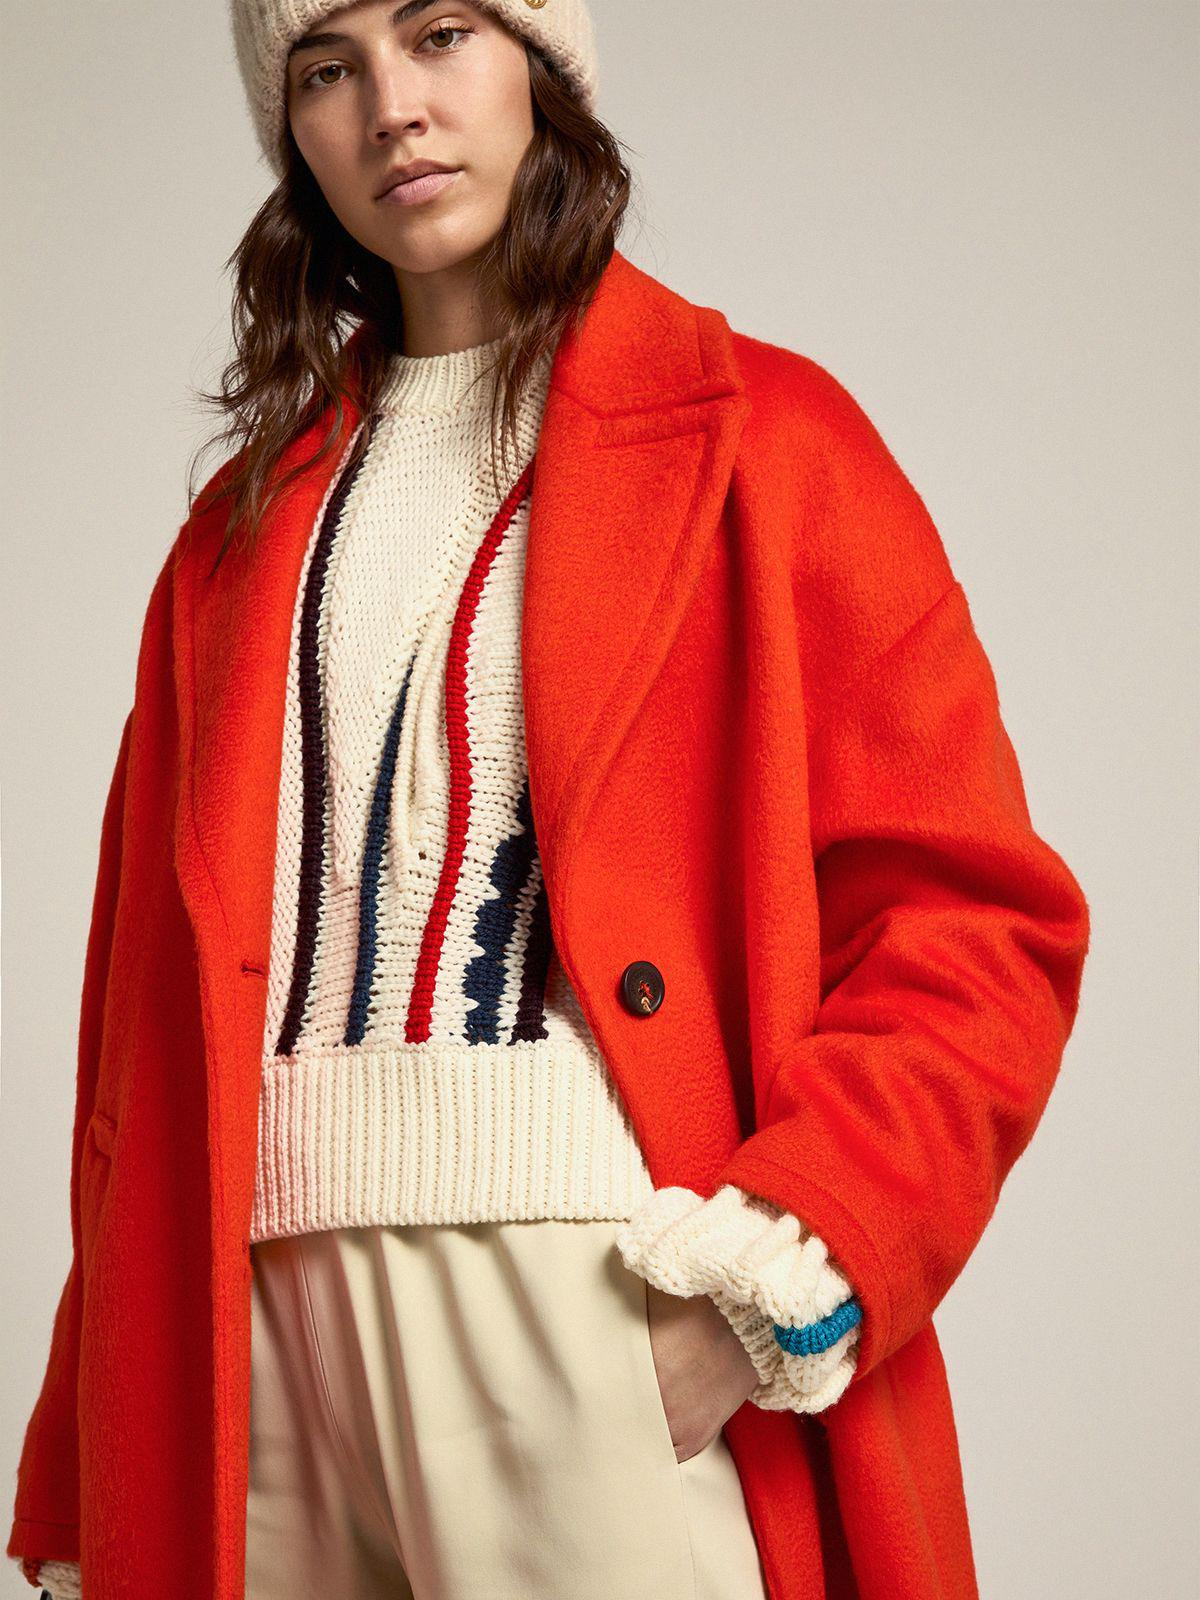 Single-breasted Journey Collection Bertina coat in orange decatized wool fabric